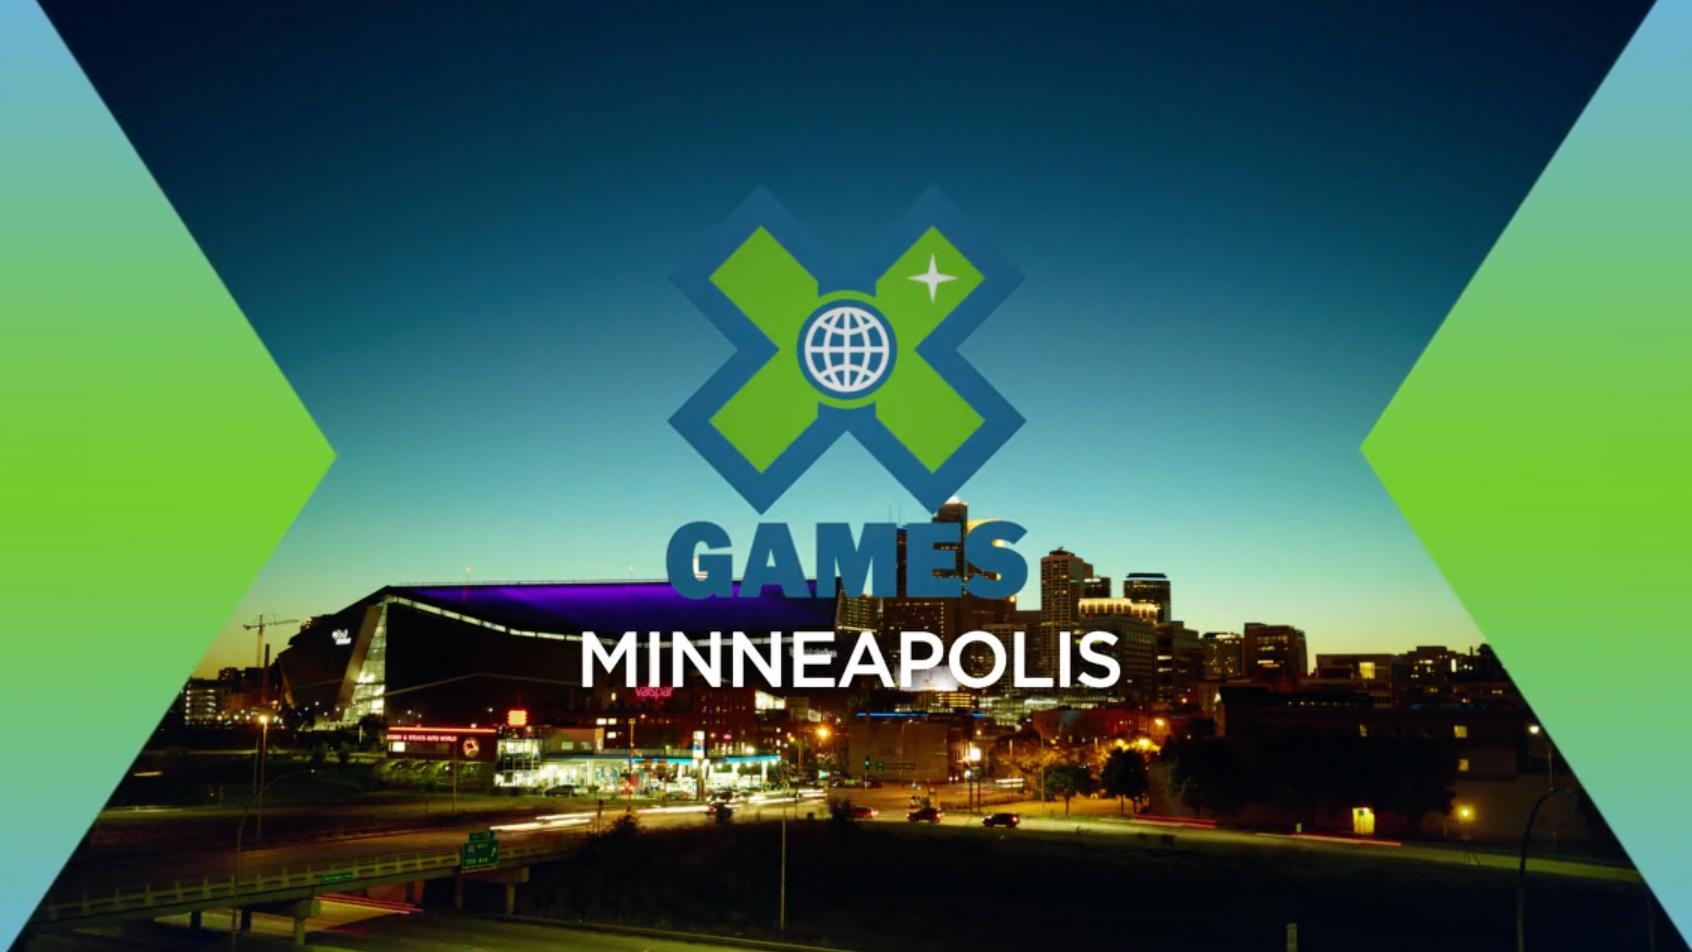 X games Minneapolis 2019 TV 2 Sport